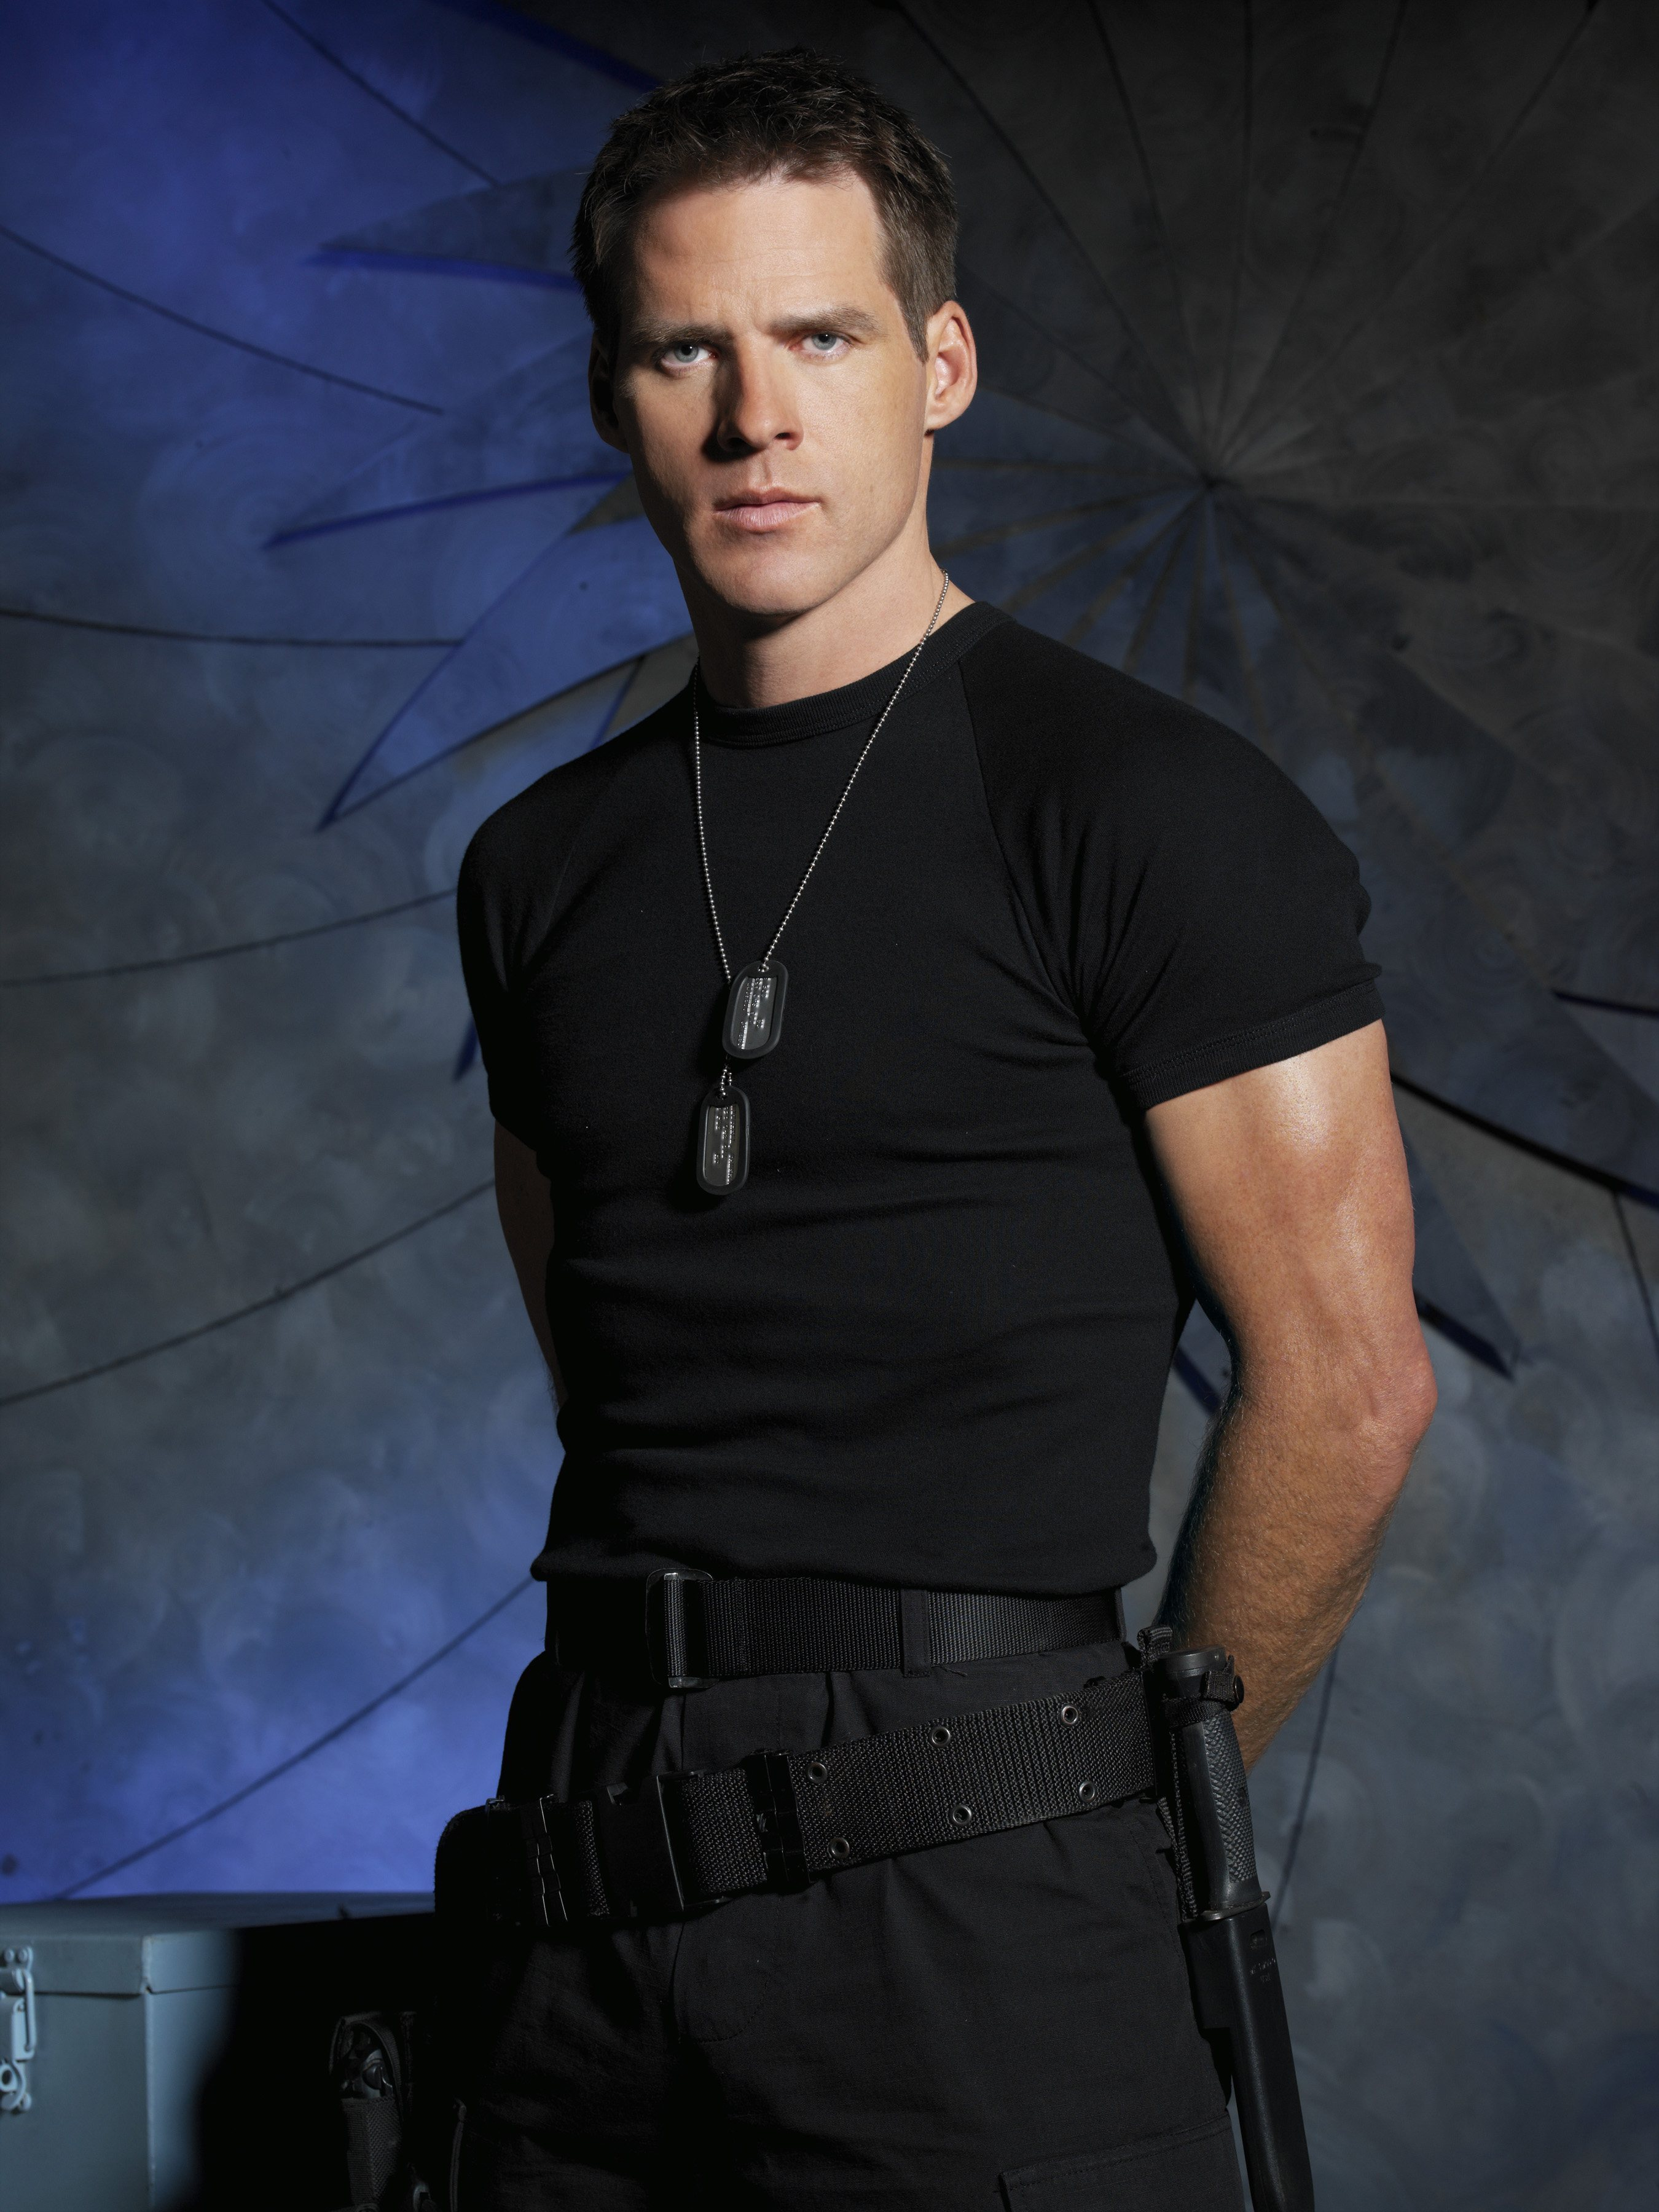 Pictures Of Ben Browder